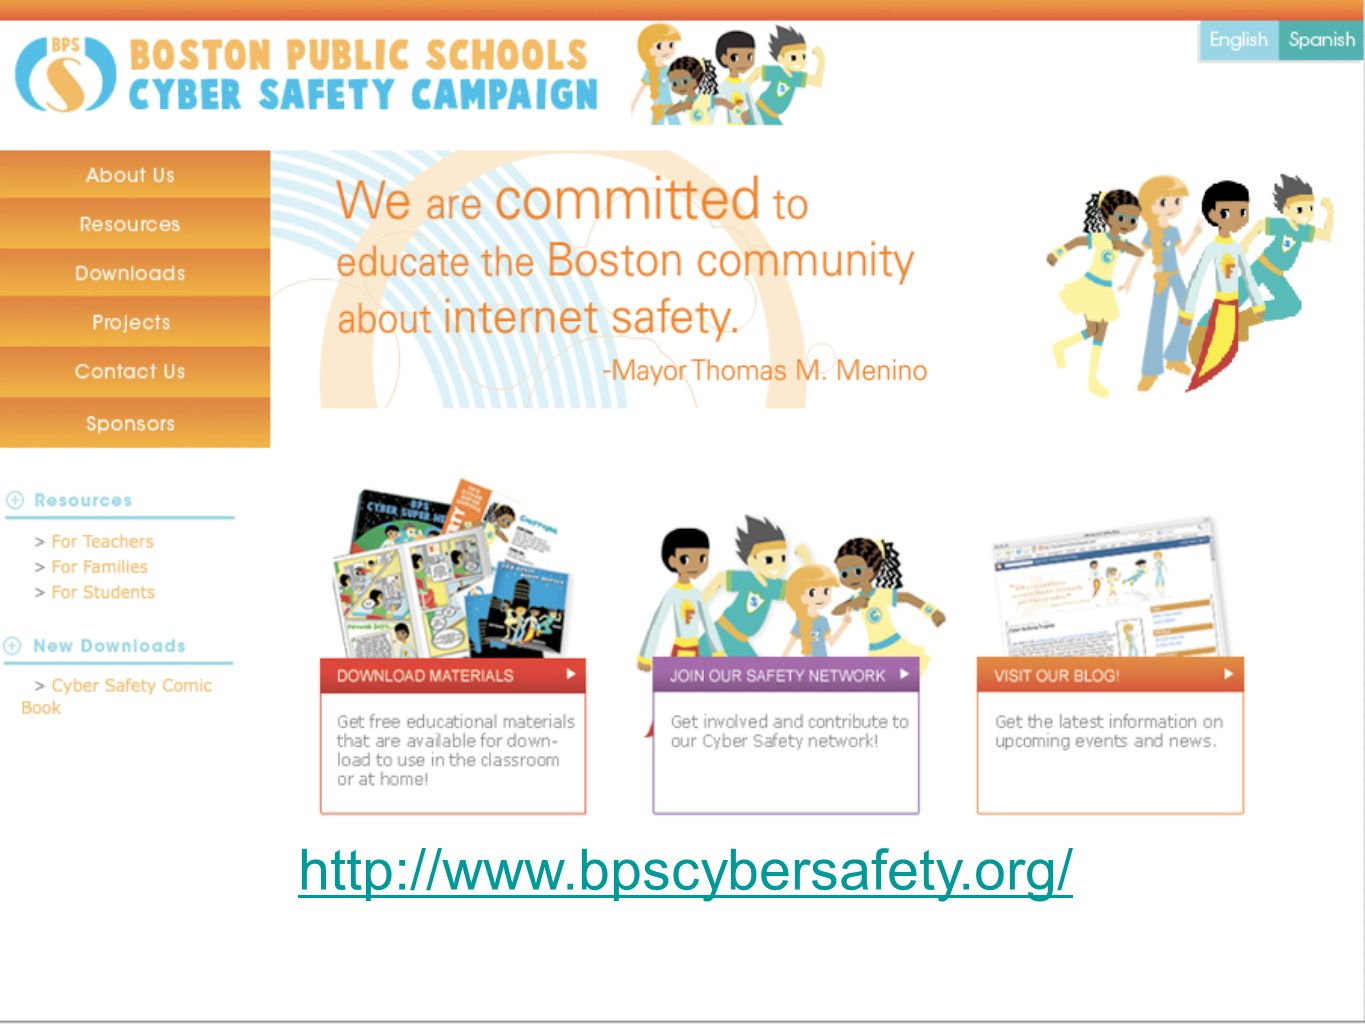 http://www.bpscybersafety.org/